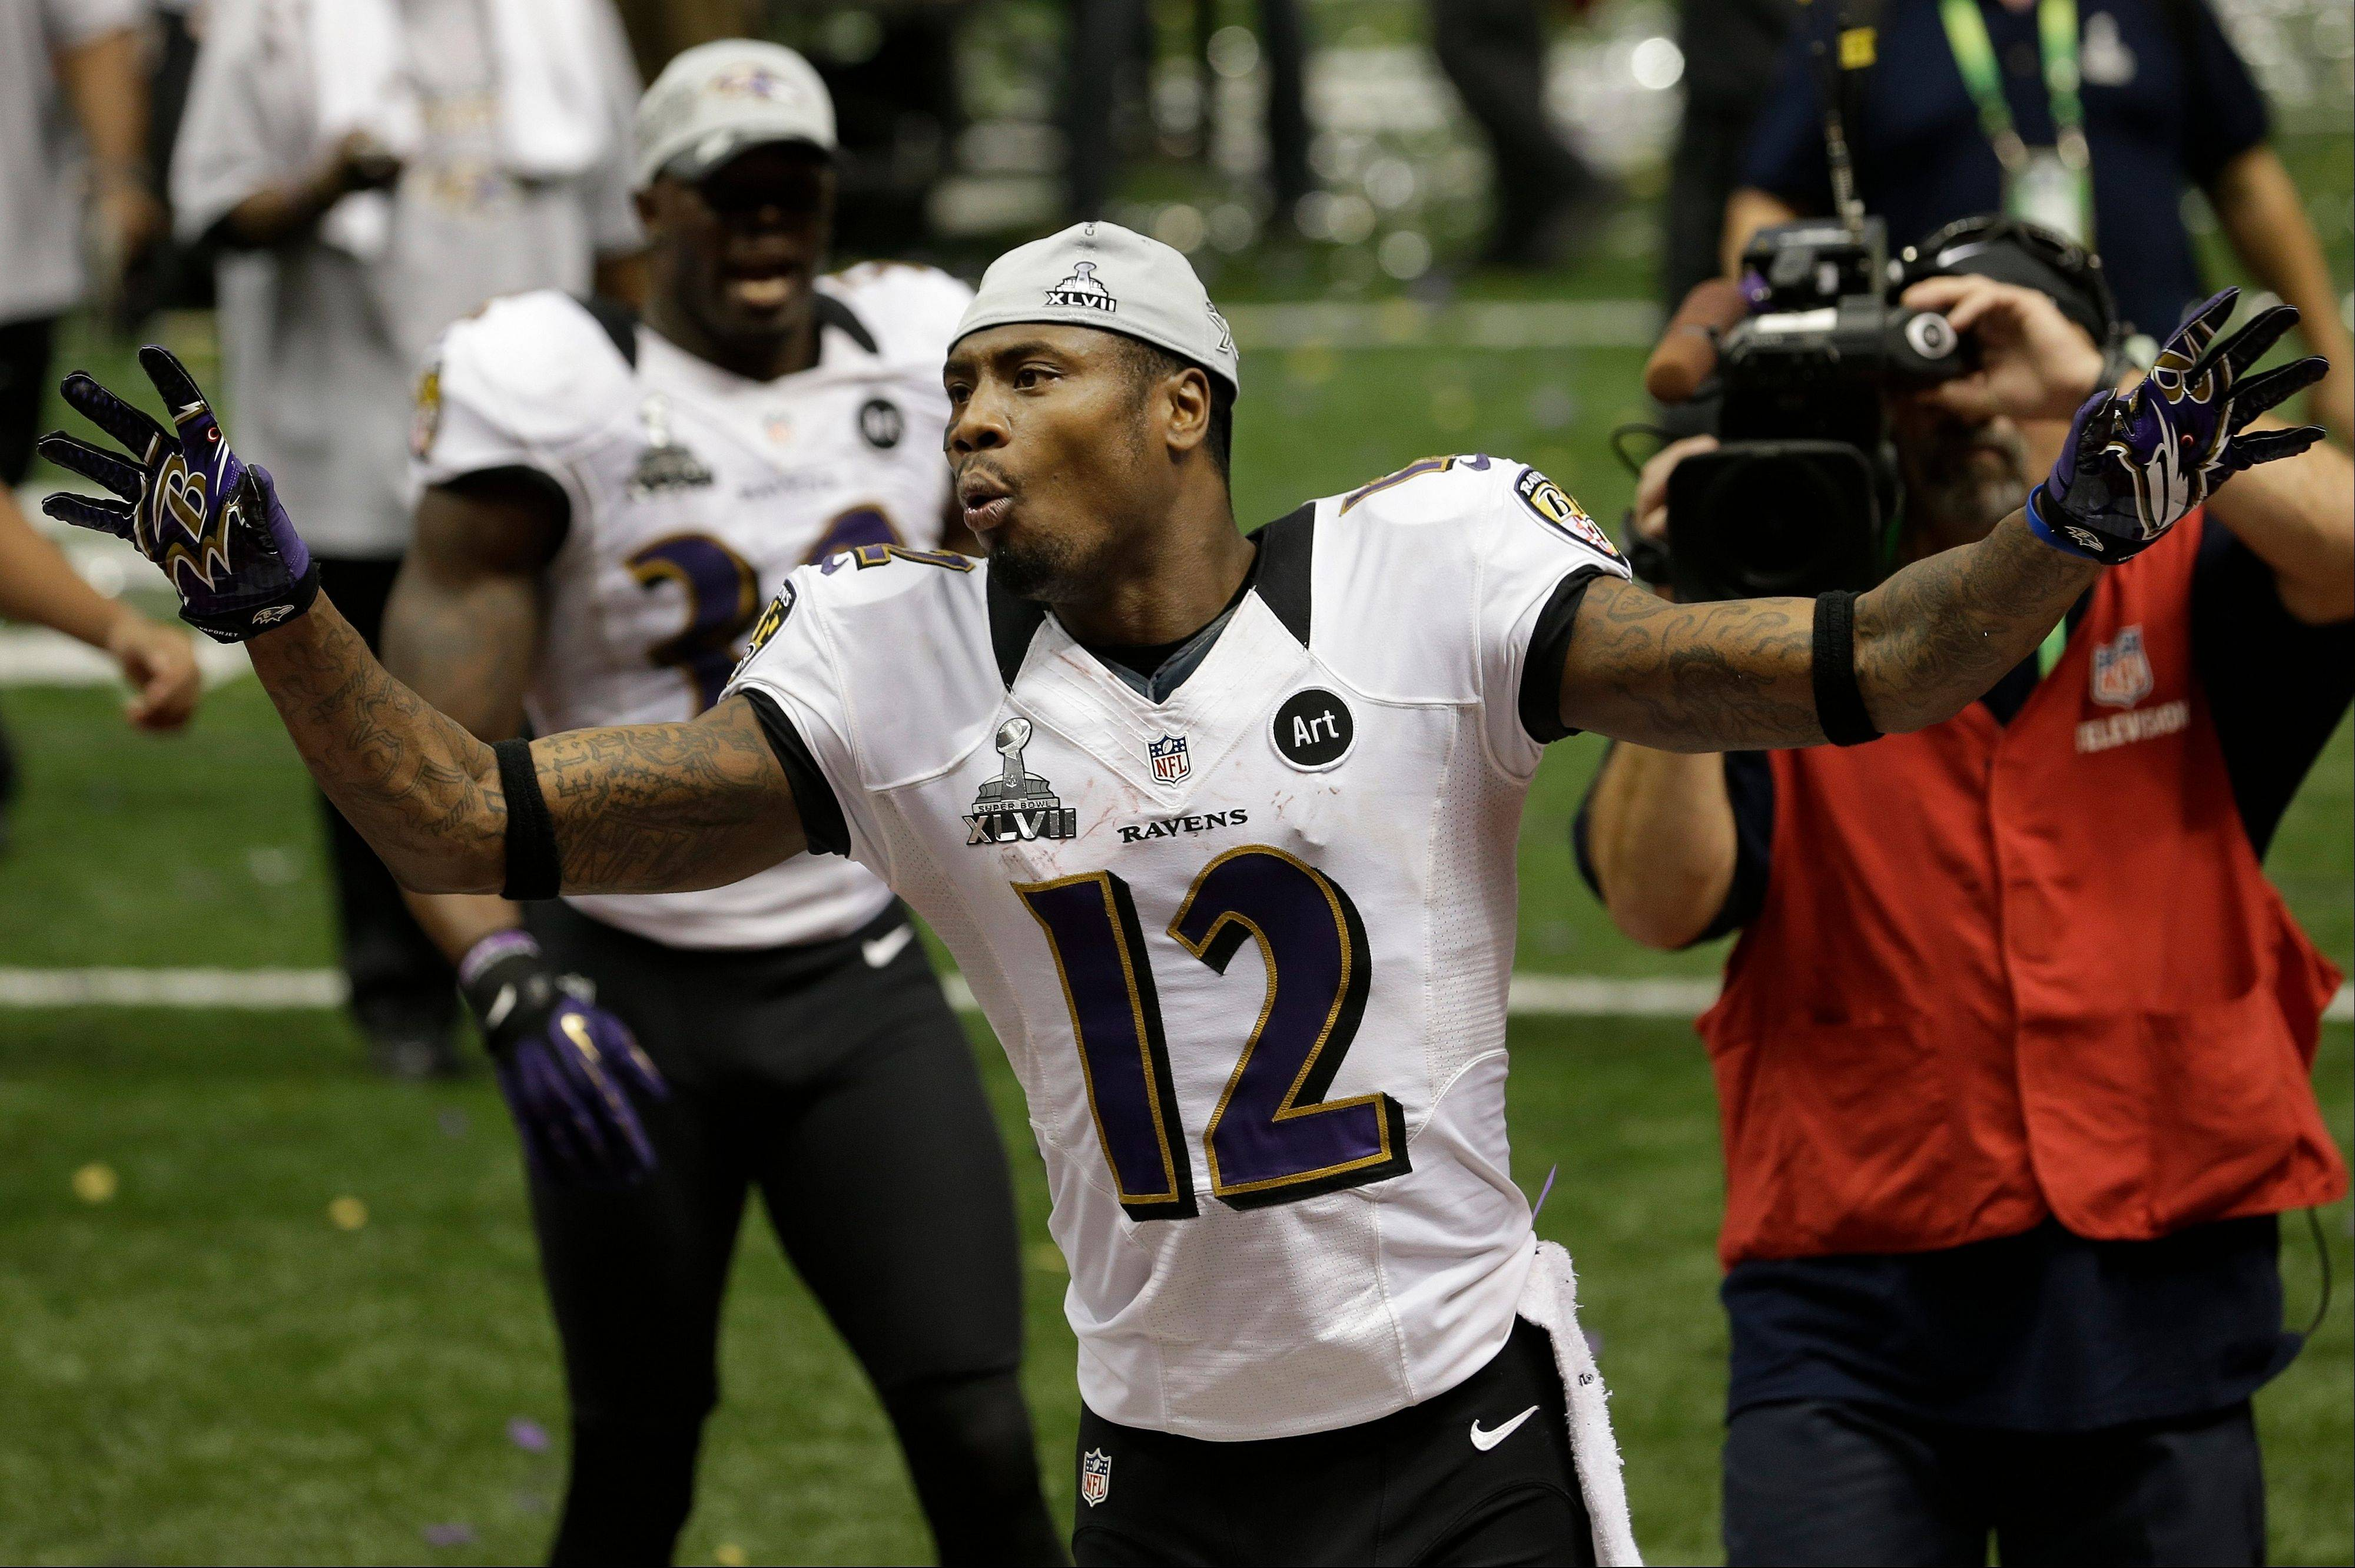 Baltimore Ravens wide receiver and return man Jacoby Jones celebrates after defeating the San Francisco 49ers 34-31 in Super Bowl XLVII Sunday in New Orleans.